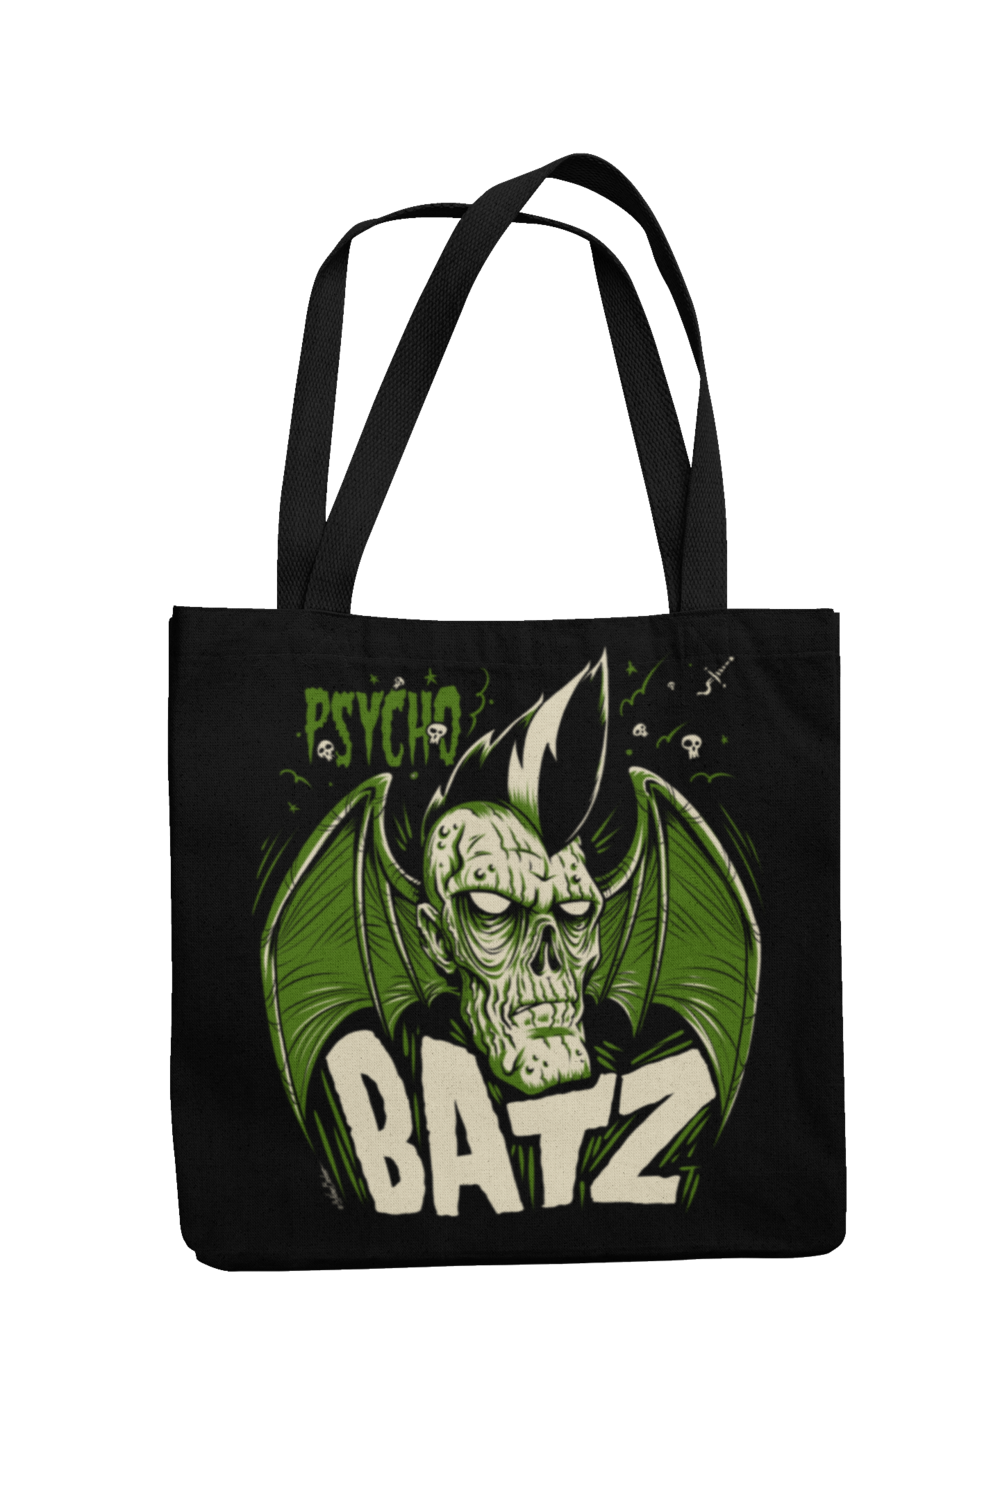 Cotton Bag Psycho Batz design by NANO BARBERO